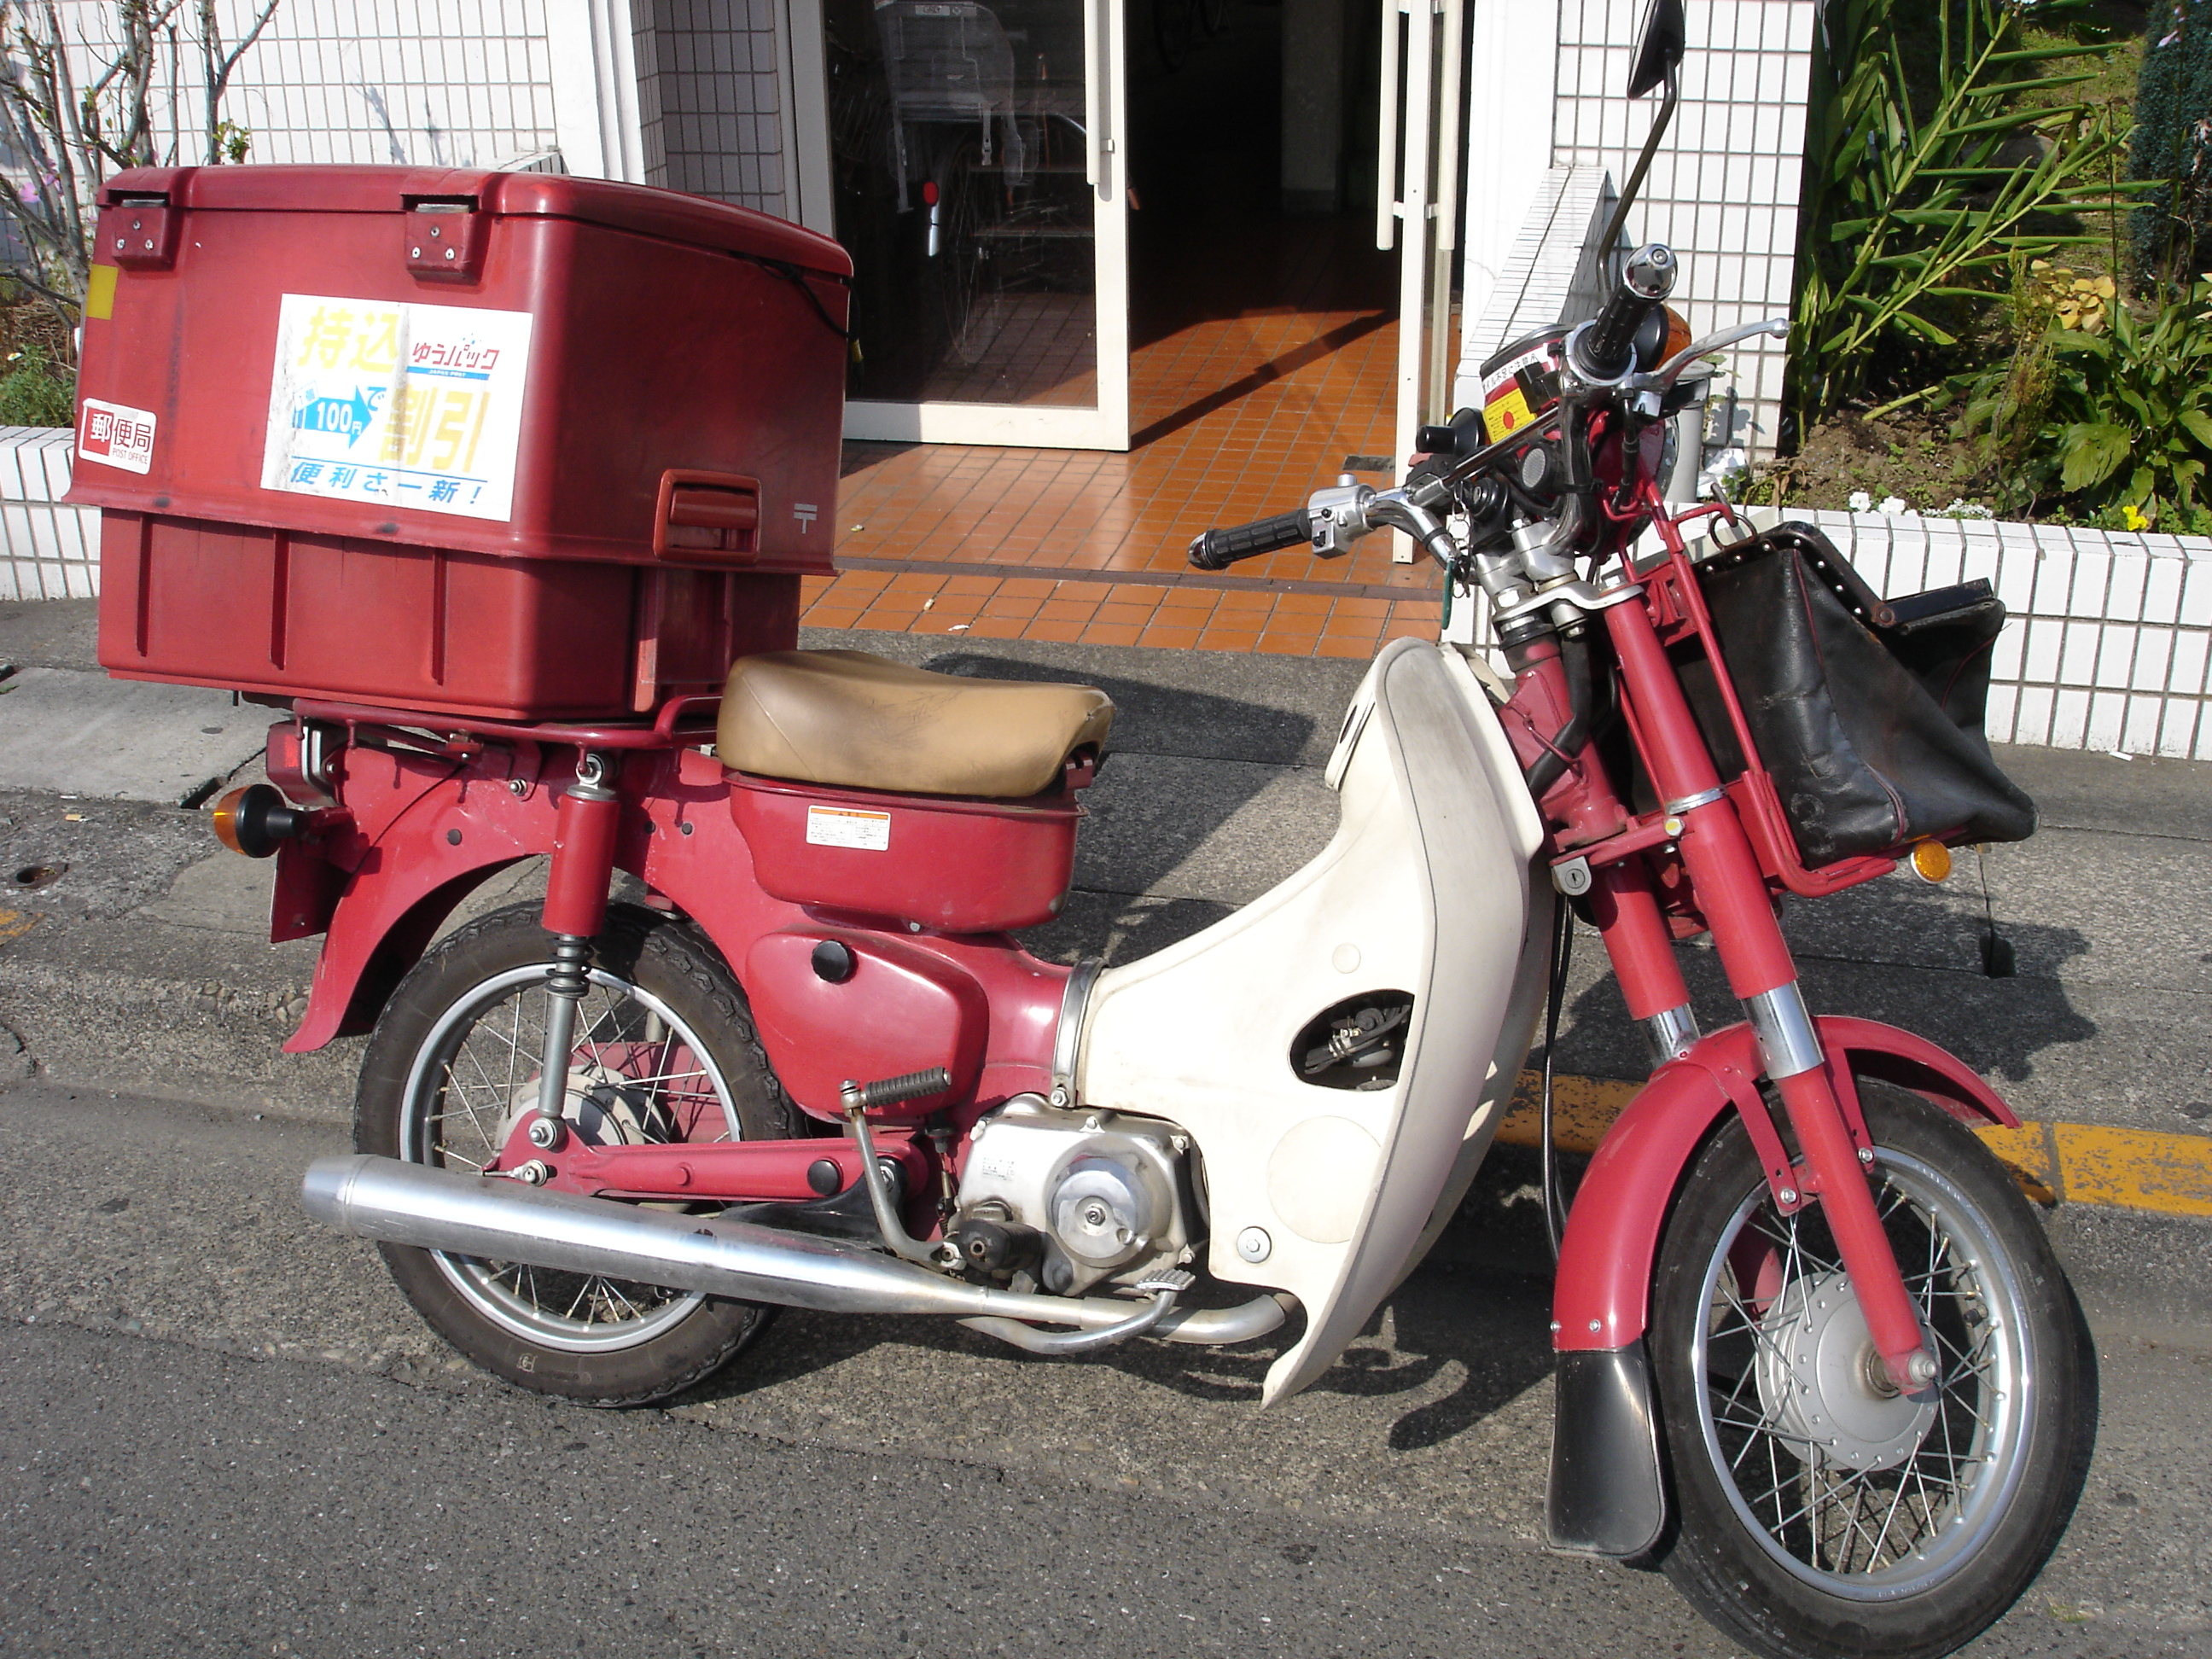 A small motor bike with a large compartment on the back.